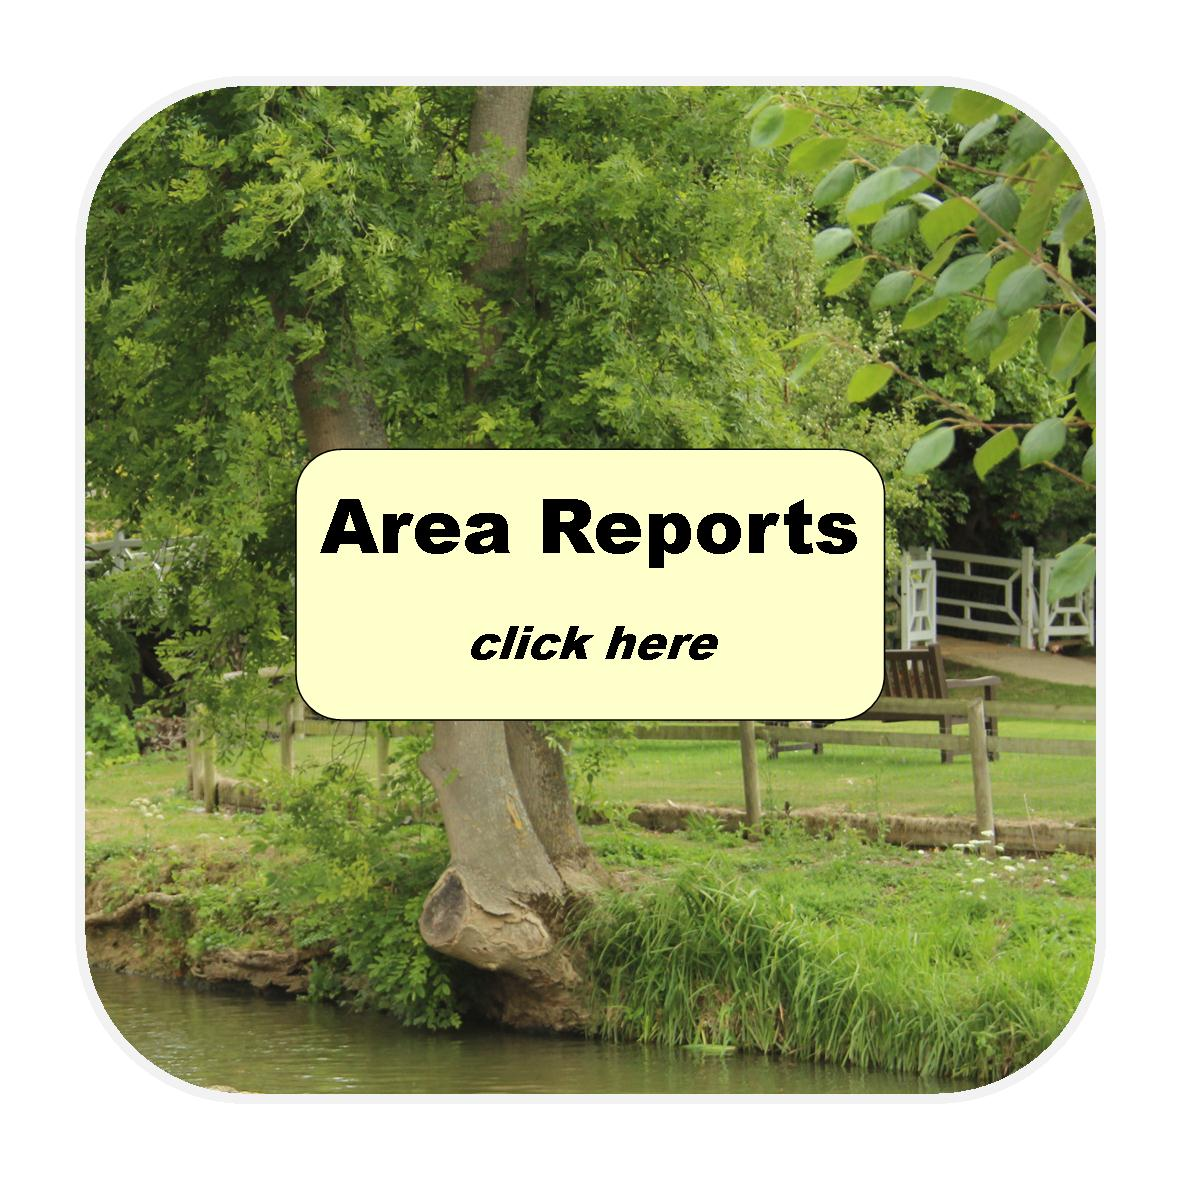 Area Reports